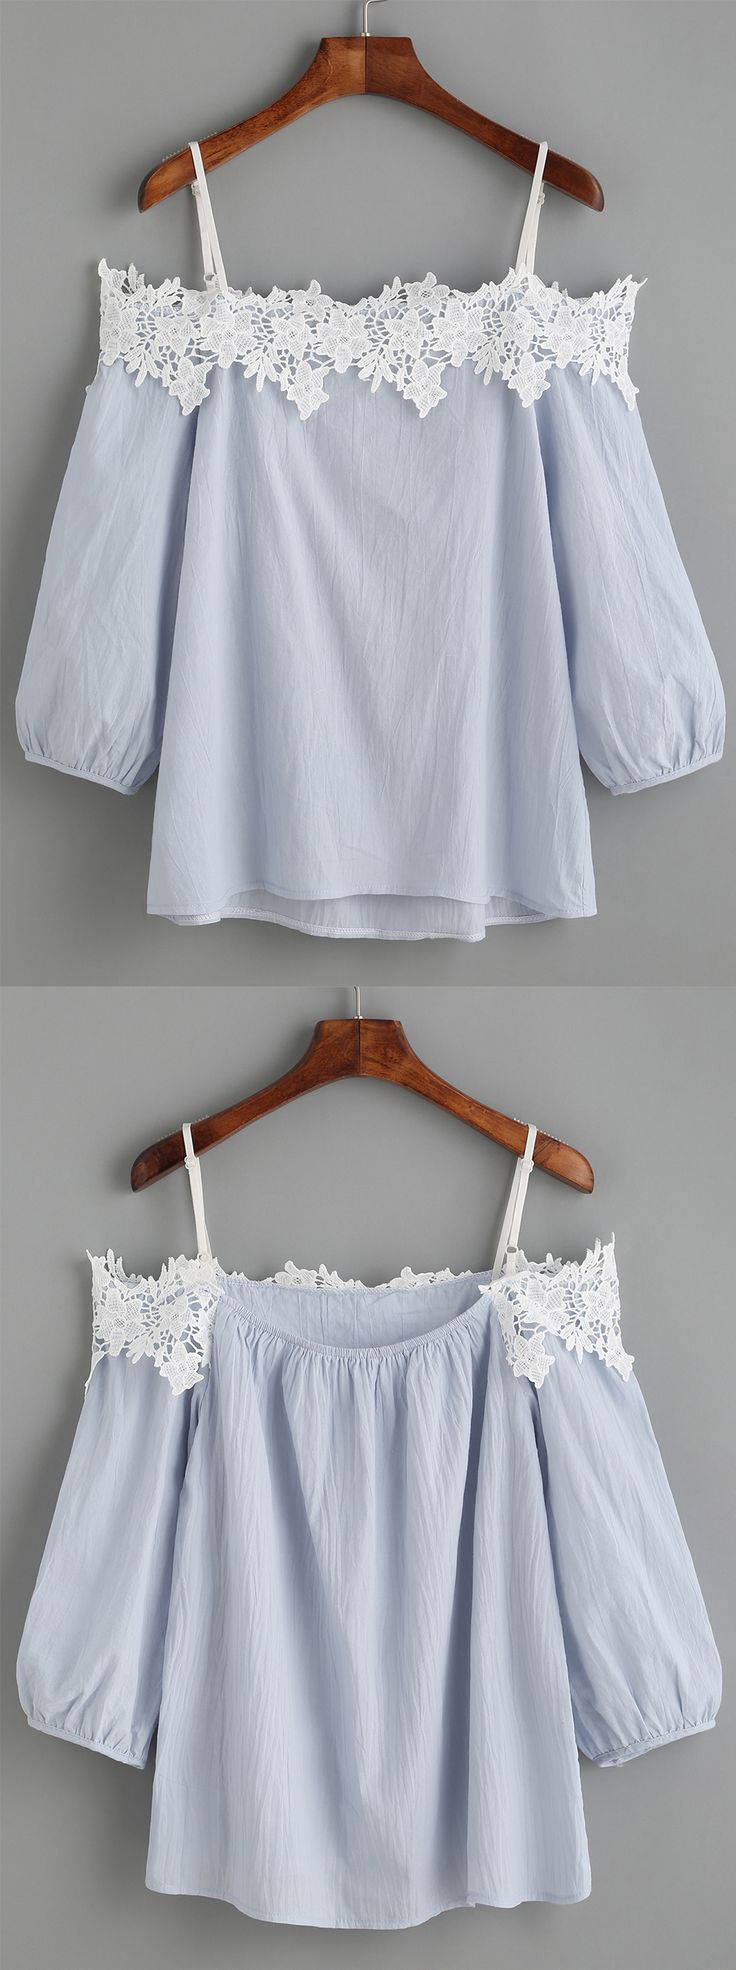 The white appliques will show your amazing collarbone. #LightBlue #ColdShoulder #Appliques #Blouse